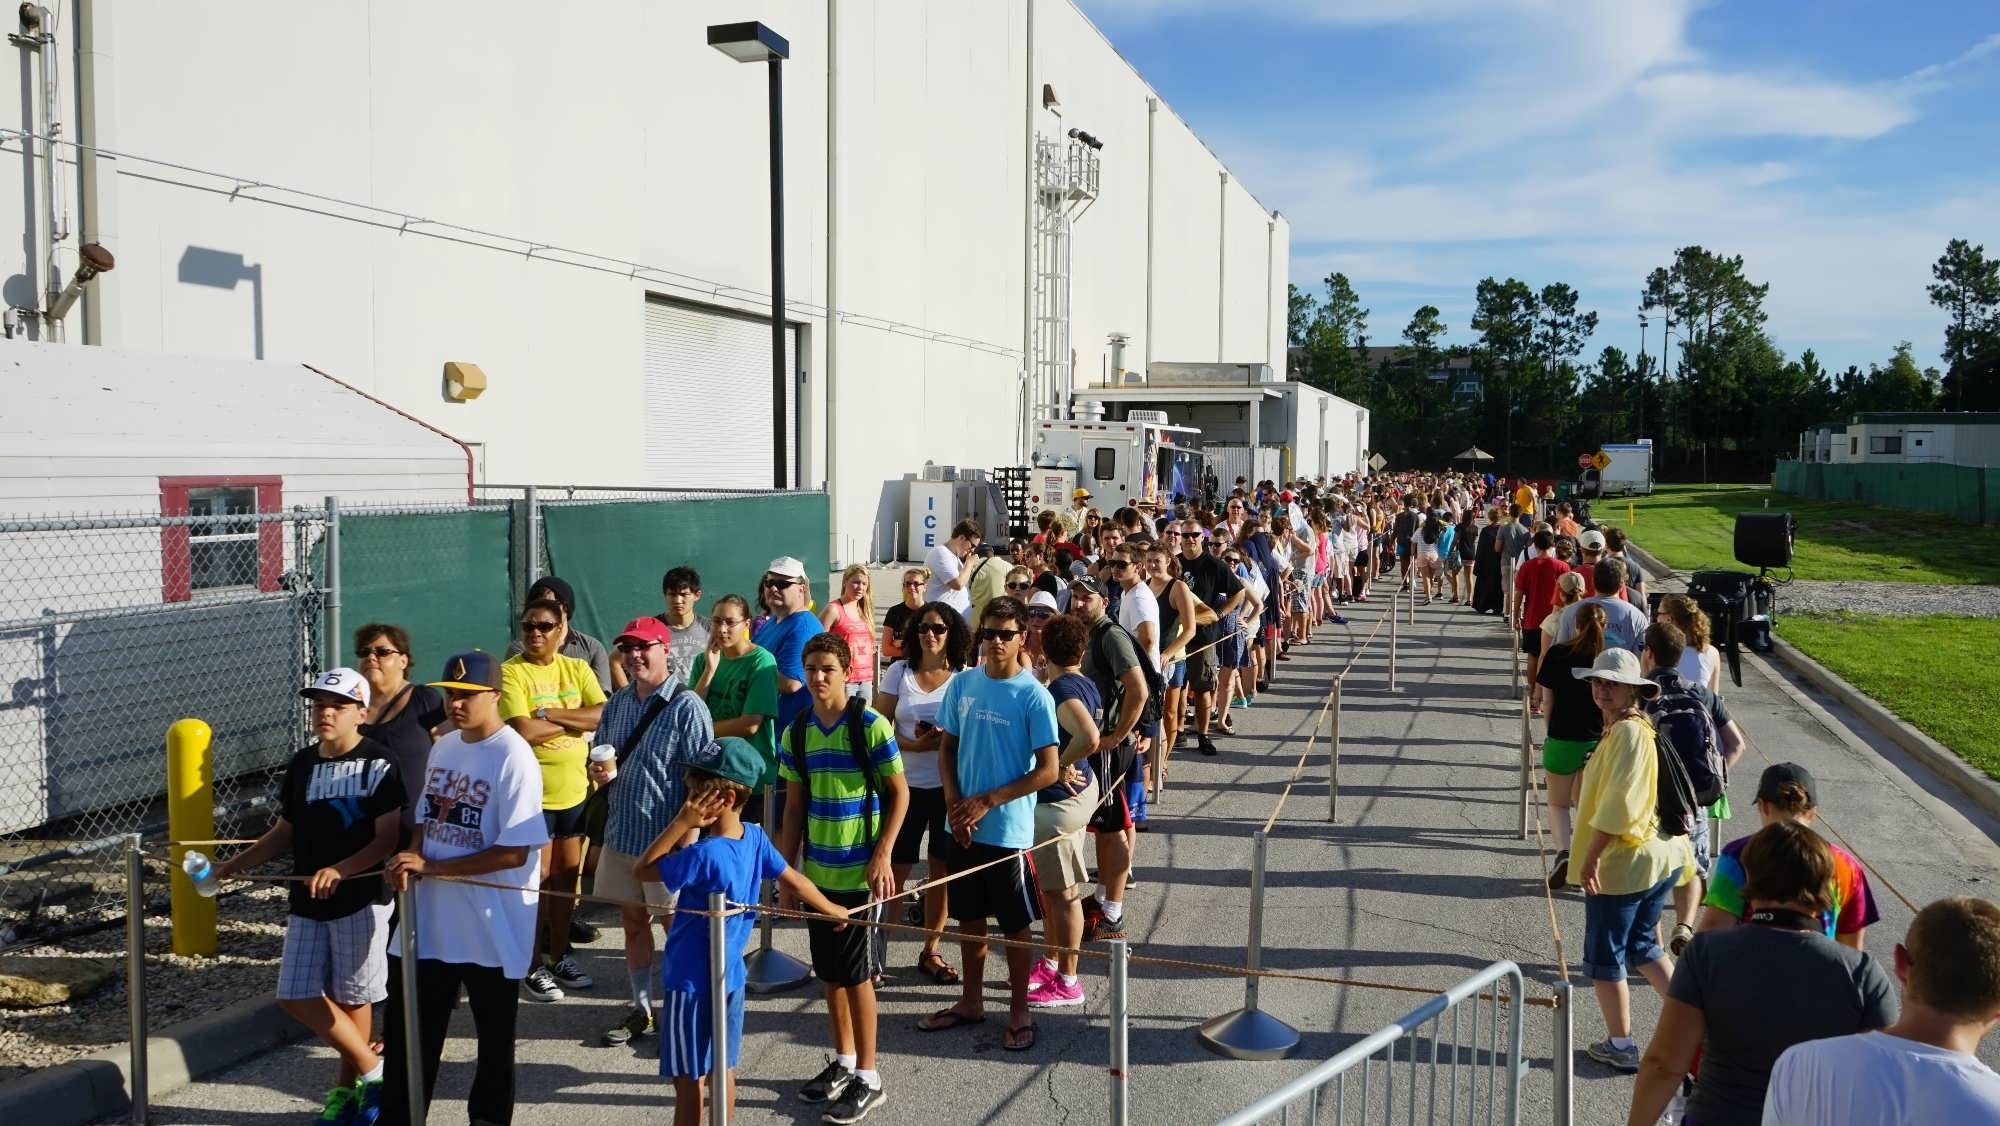 Diagon Alley extended standby line takes guests backstage